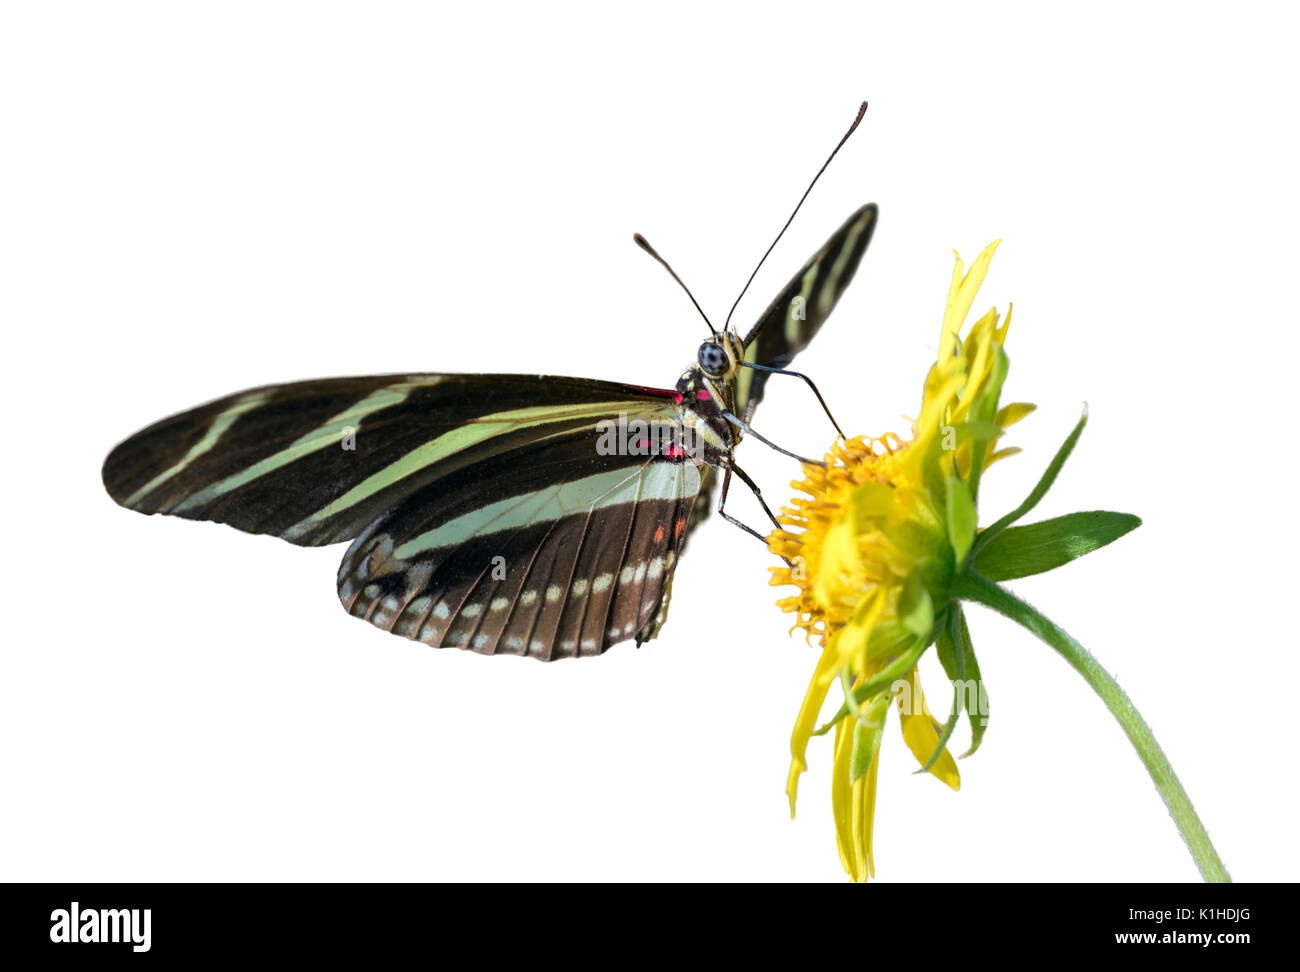 Zebra Longwing Butterfly (Heliconius charitonius) feeding on a flower, isolated on white background - Stock Image